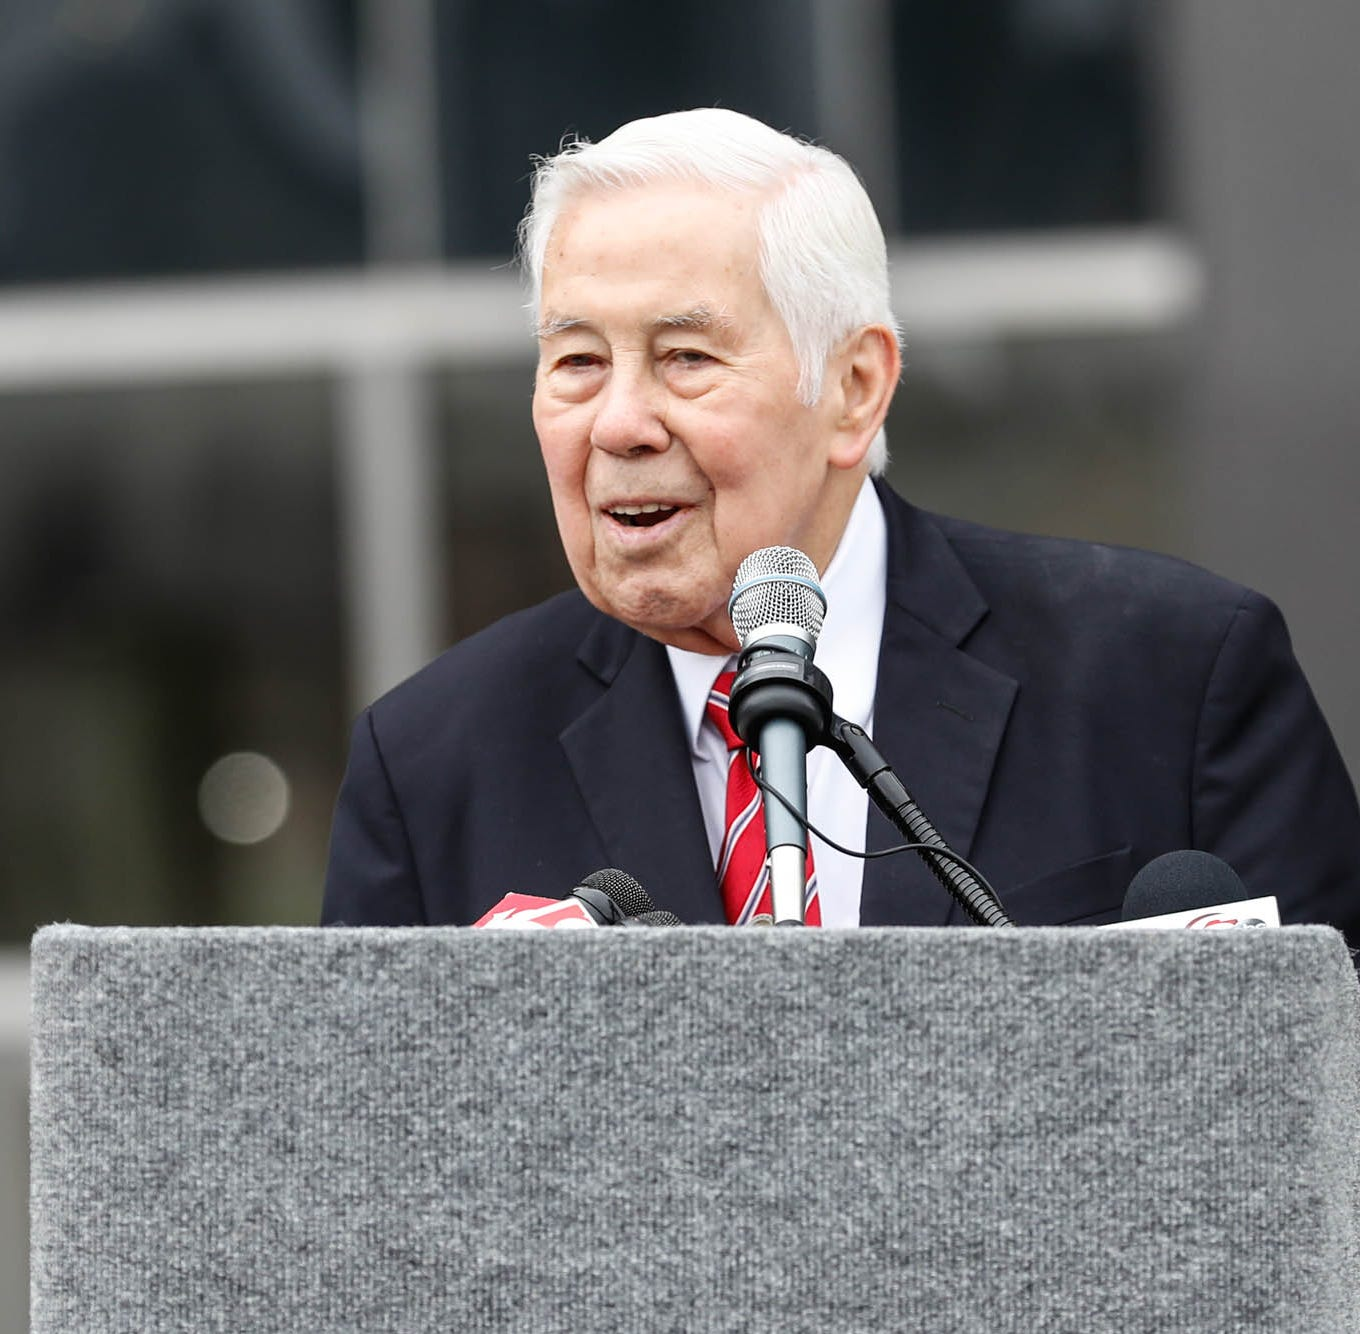 Richard Lugar, former Indiana senator and Indianapolis mayor, dies at age 87